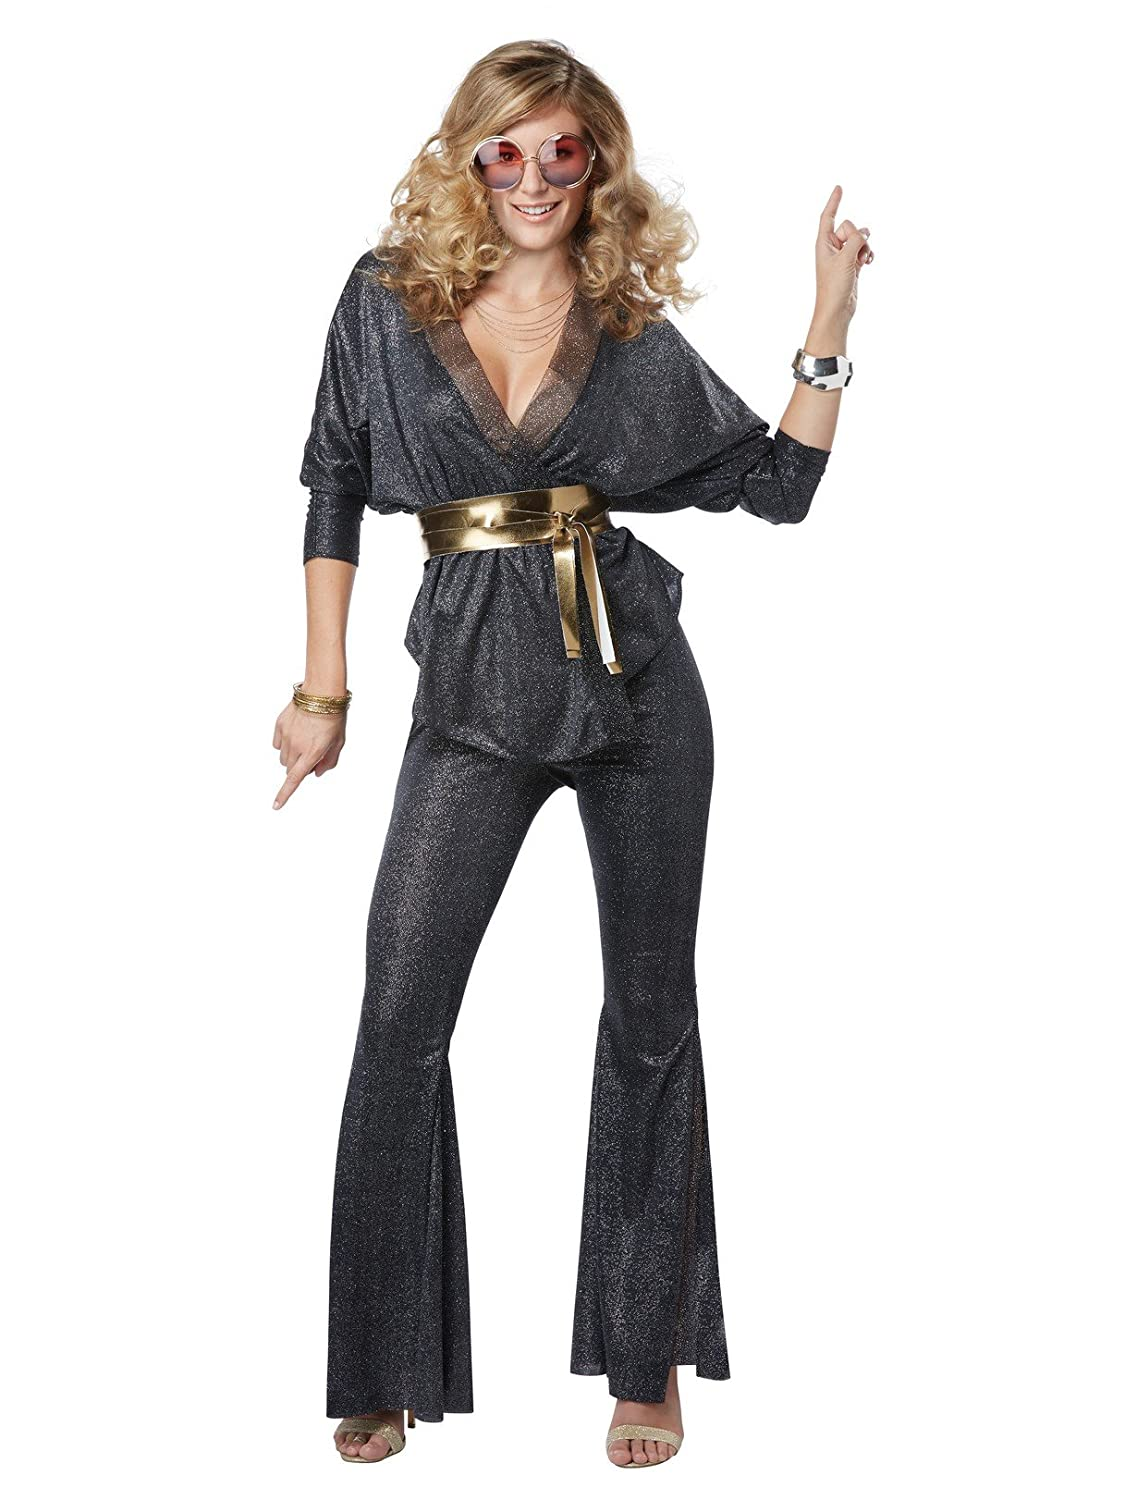 70s Jumpsuit | Disco Jumpsuits, Sequin Rompers Dazzler Disco Costume for Adults $29.13 AT vintagedancer.com